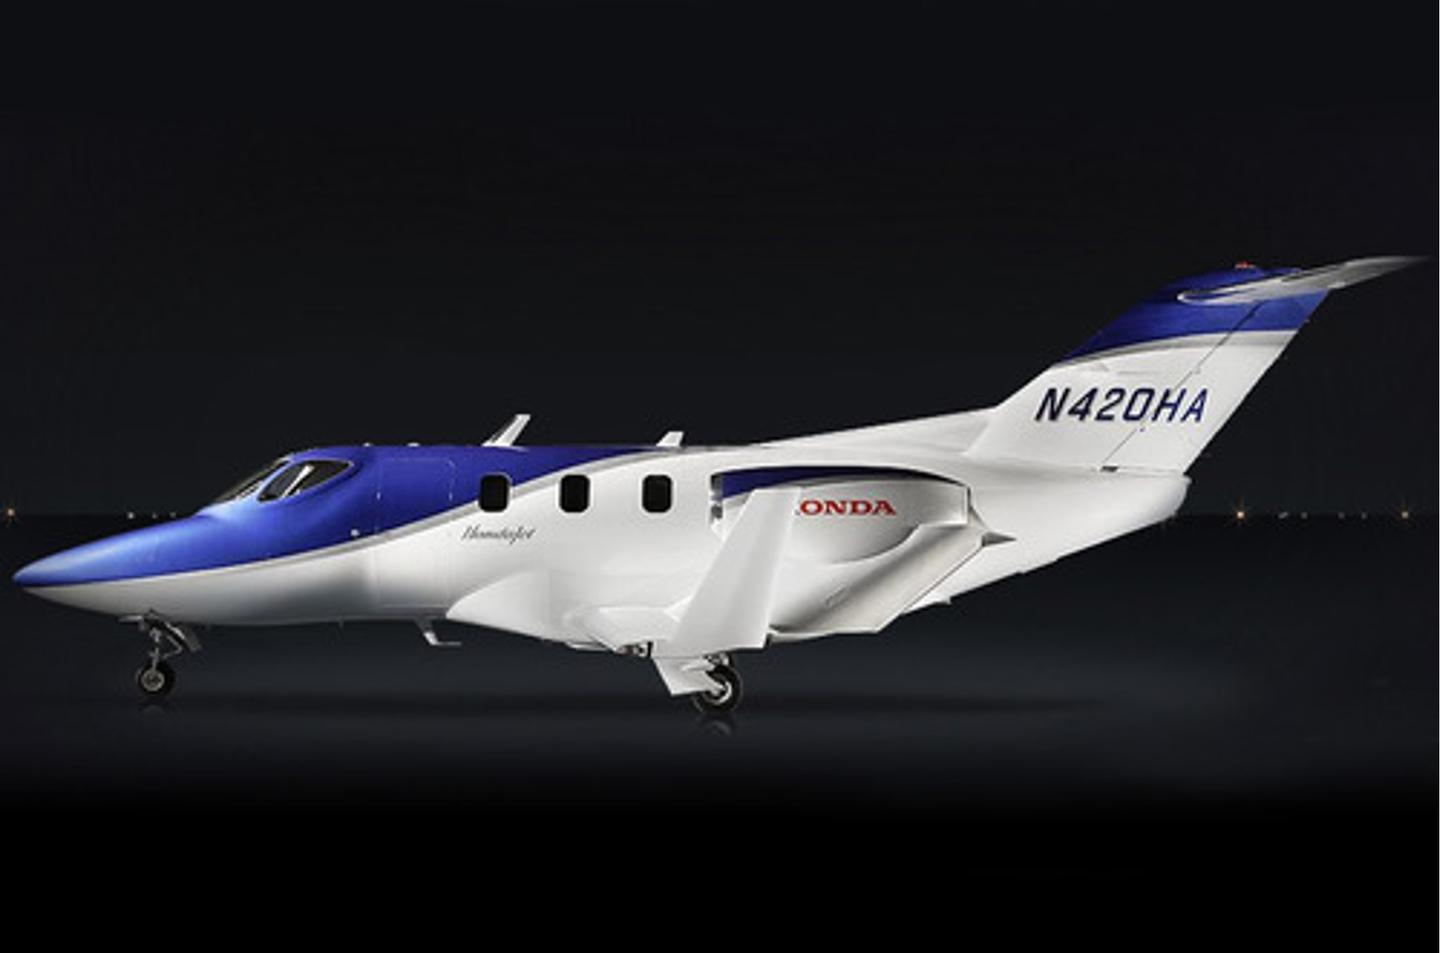 The HondaJet is Honda's first entry into the aircraft field